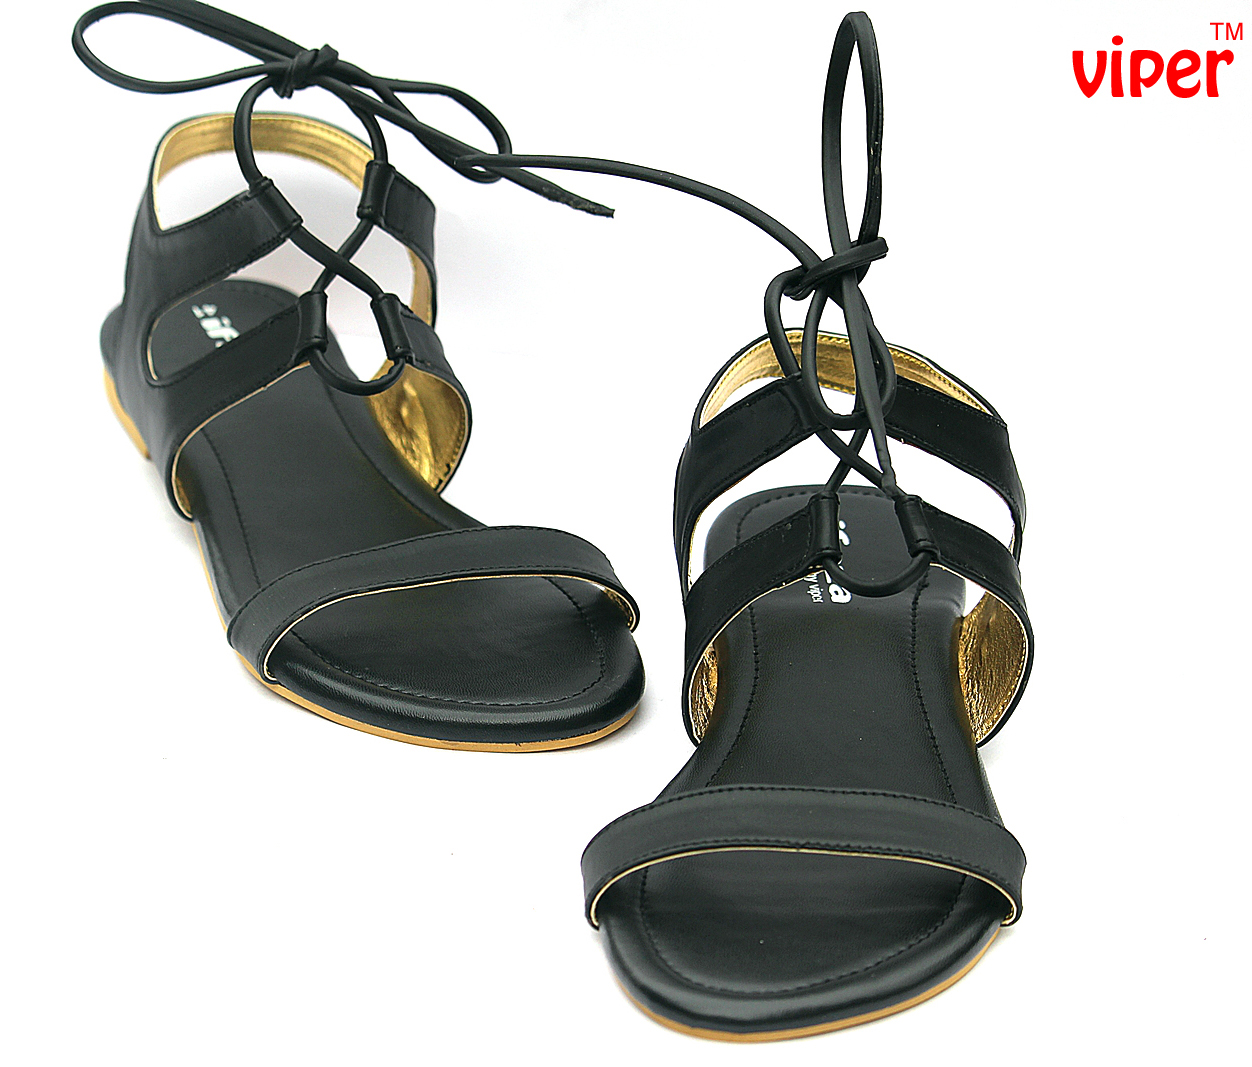 Exclusive Ladies Footwear (Ifzza Sandal)- Product- LC 2059